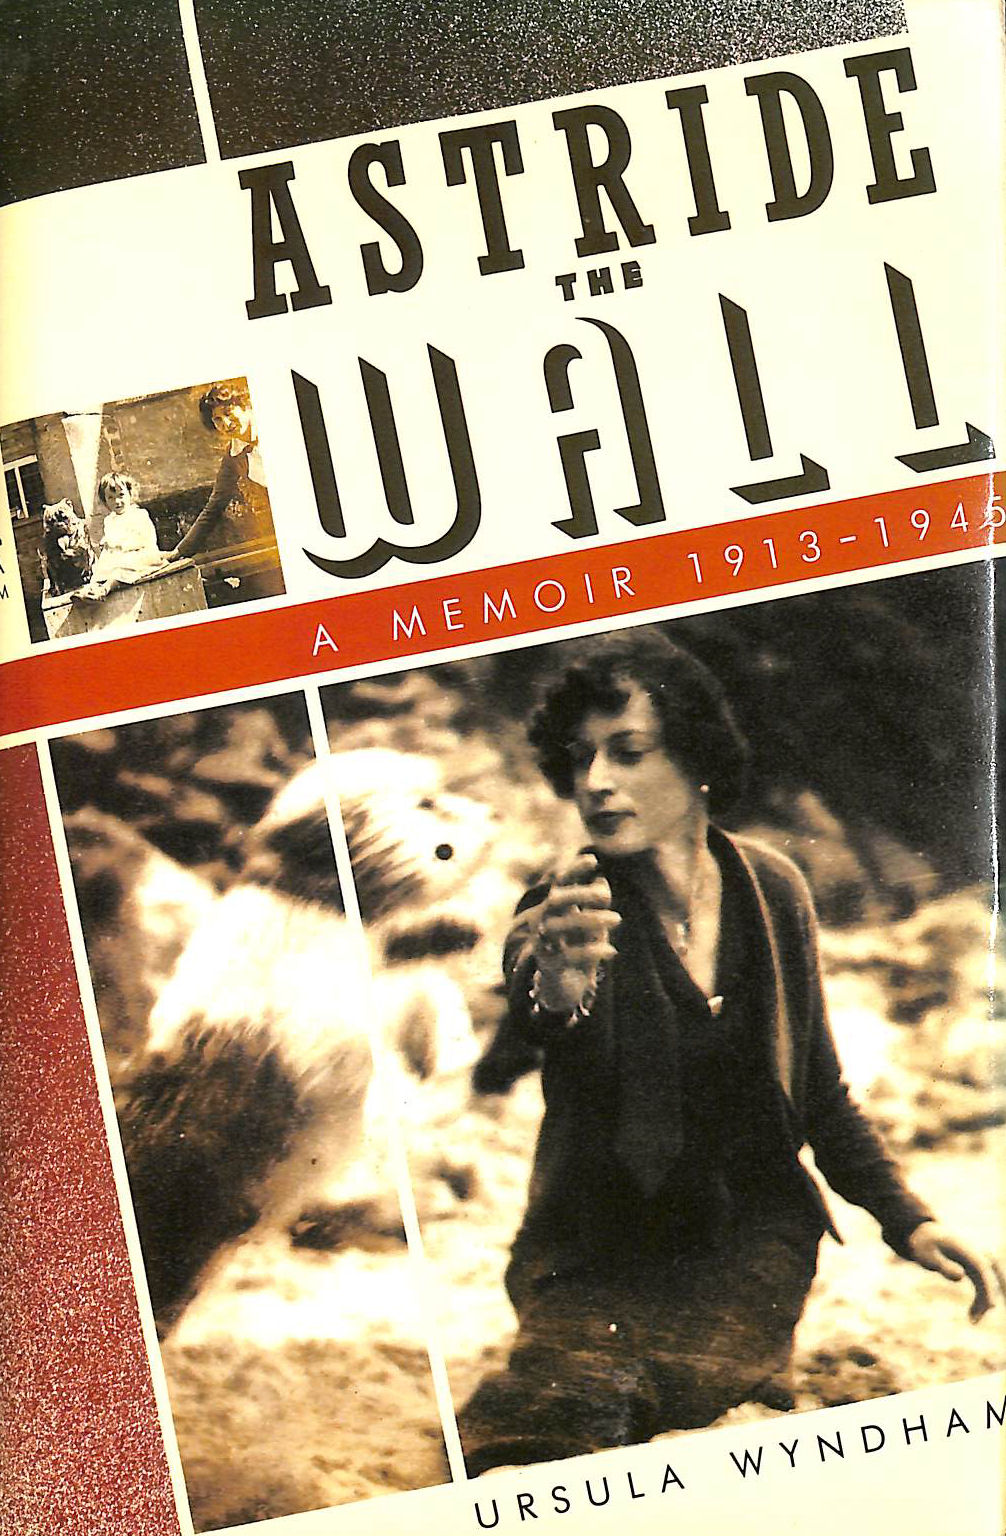 Image for Astride The Wall: A Memoir, 1913-45